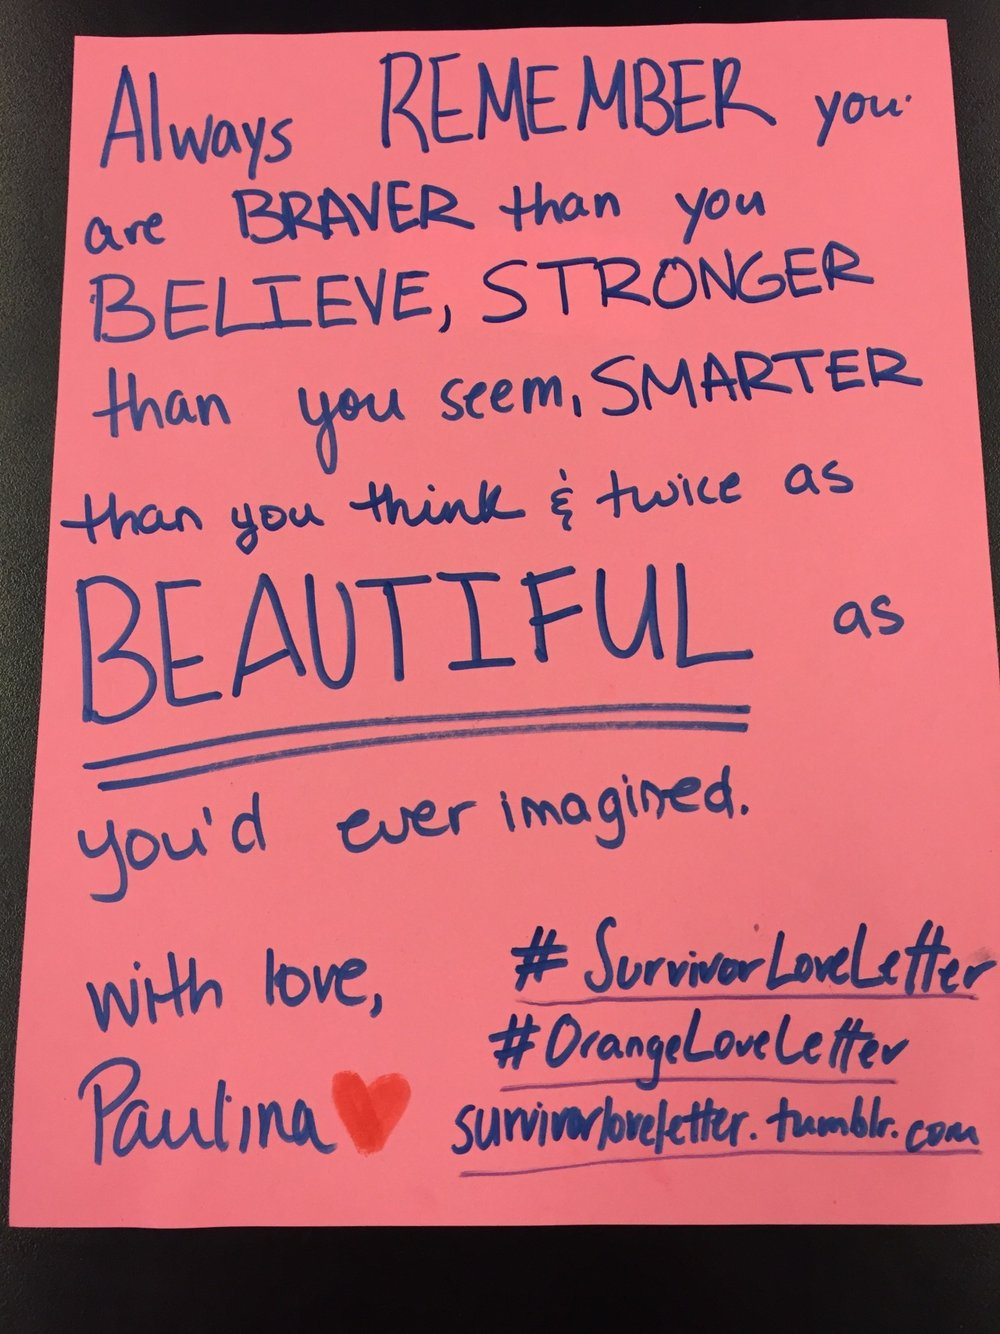 Always remember you are braver thank you believe, stronger than you seem, smarter than you think and twice as beautiful as you've every imagined.   With love,   Paulina